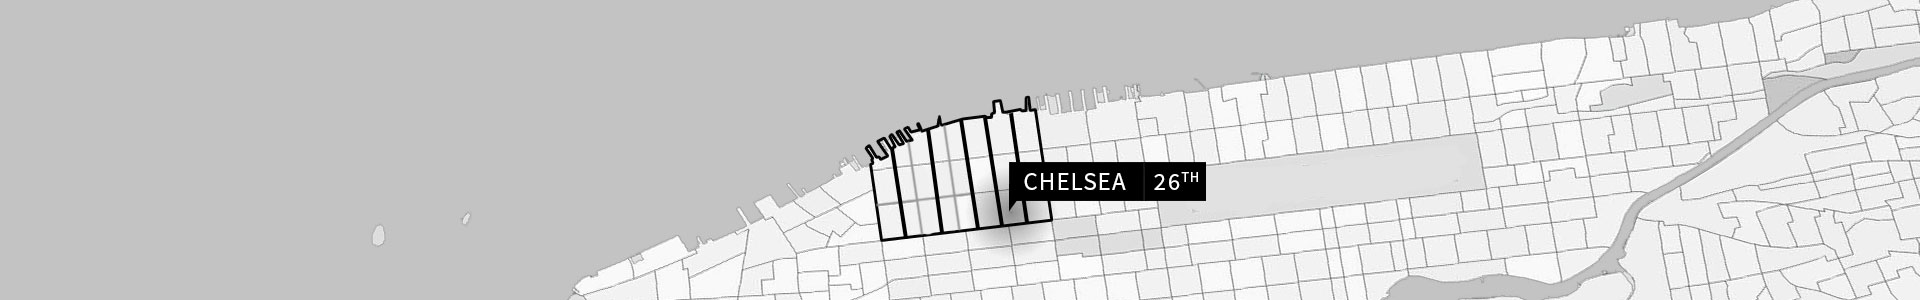 Chelsea, 26th Street map